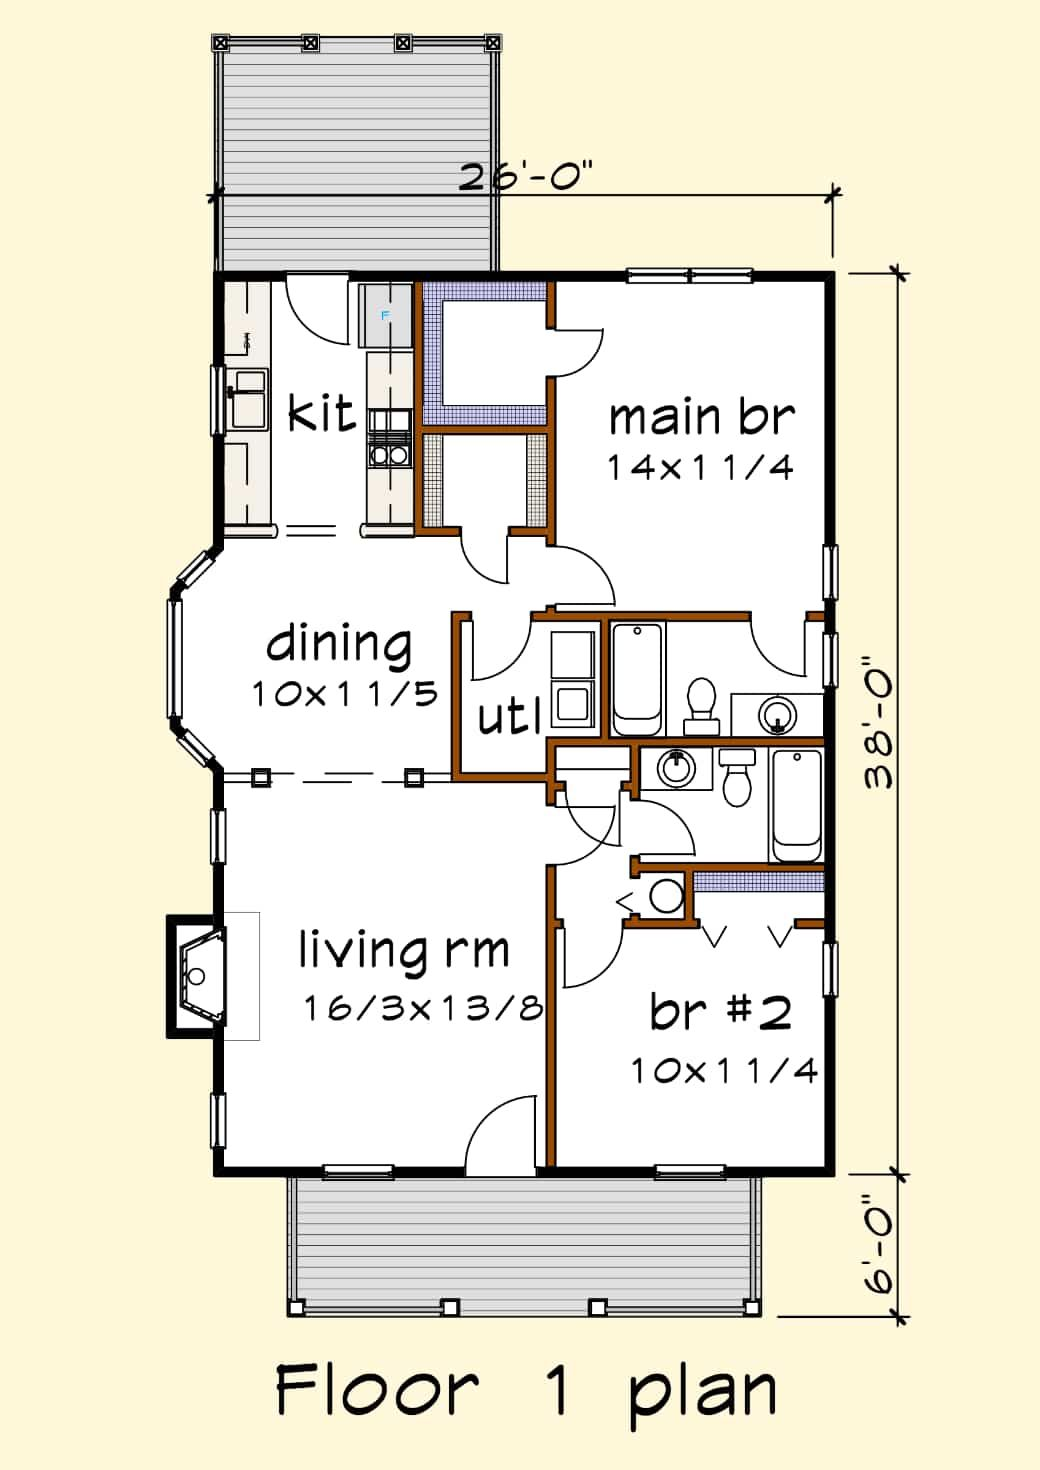 Floorplan Image For Plan Home Design Plans House Plans Cottage Style House Plans